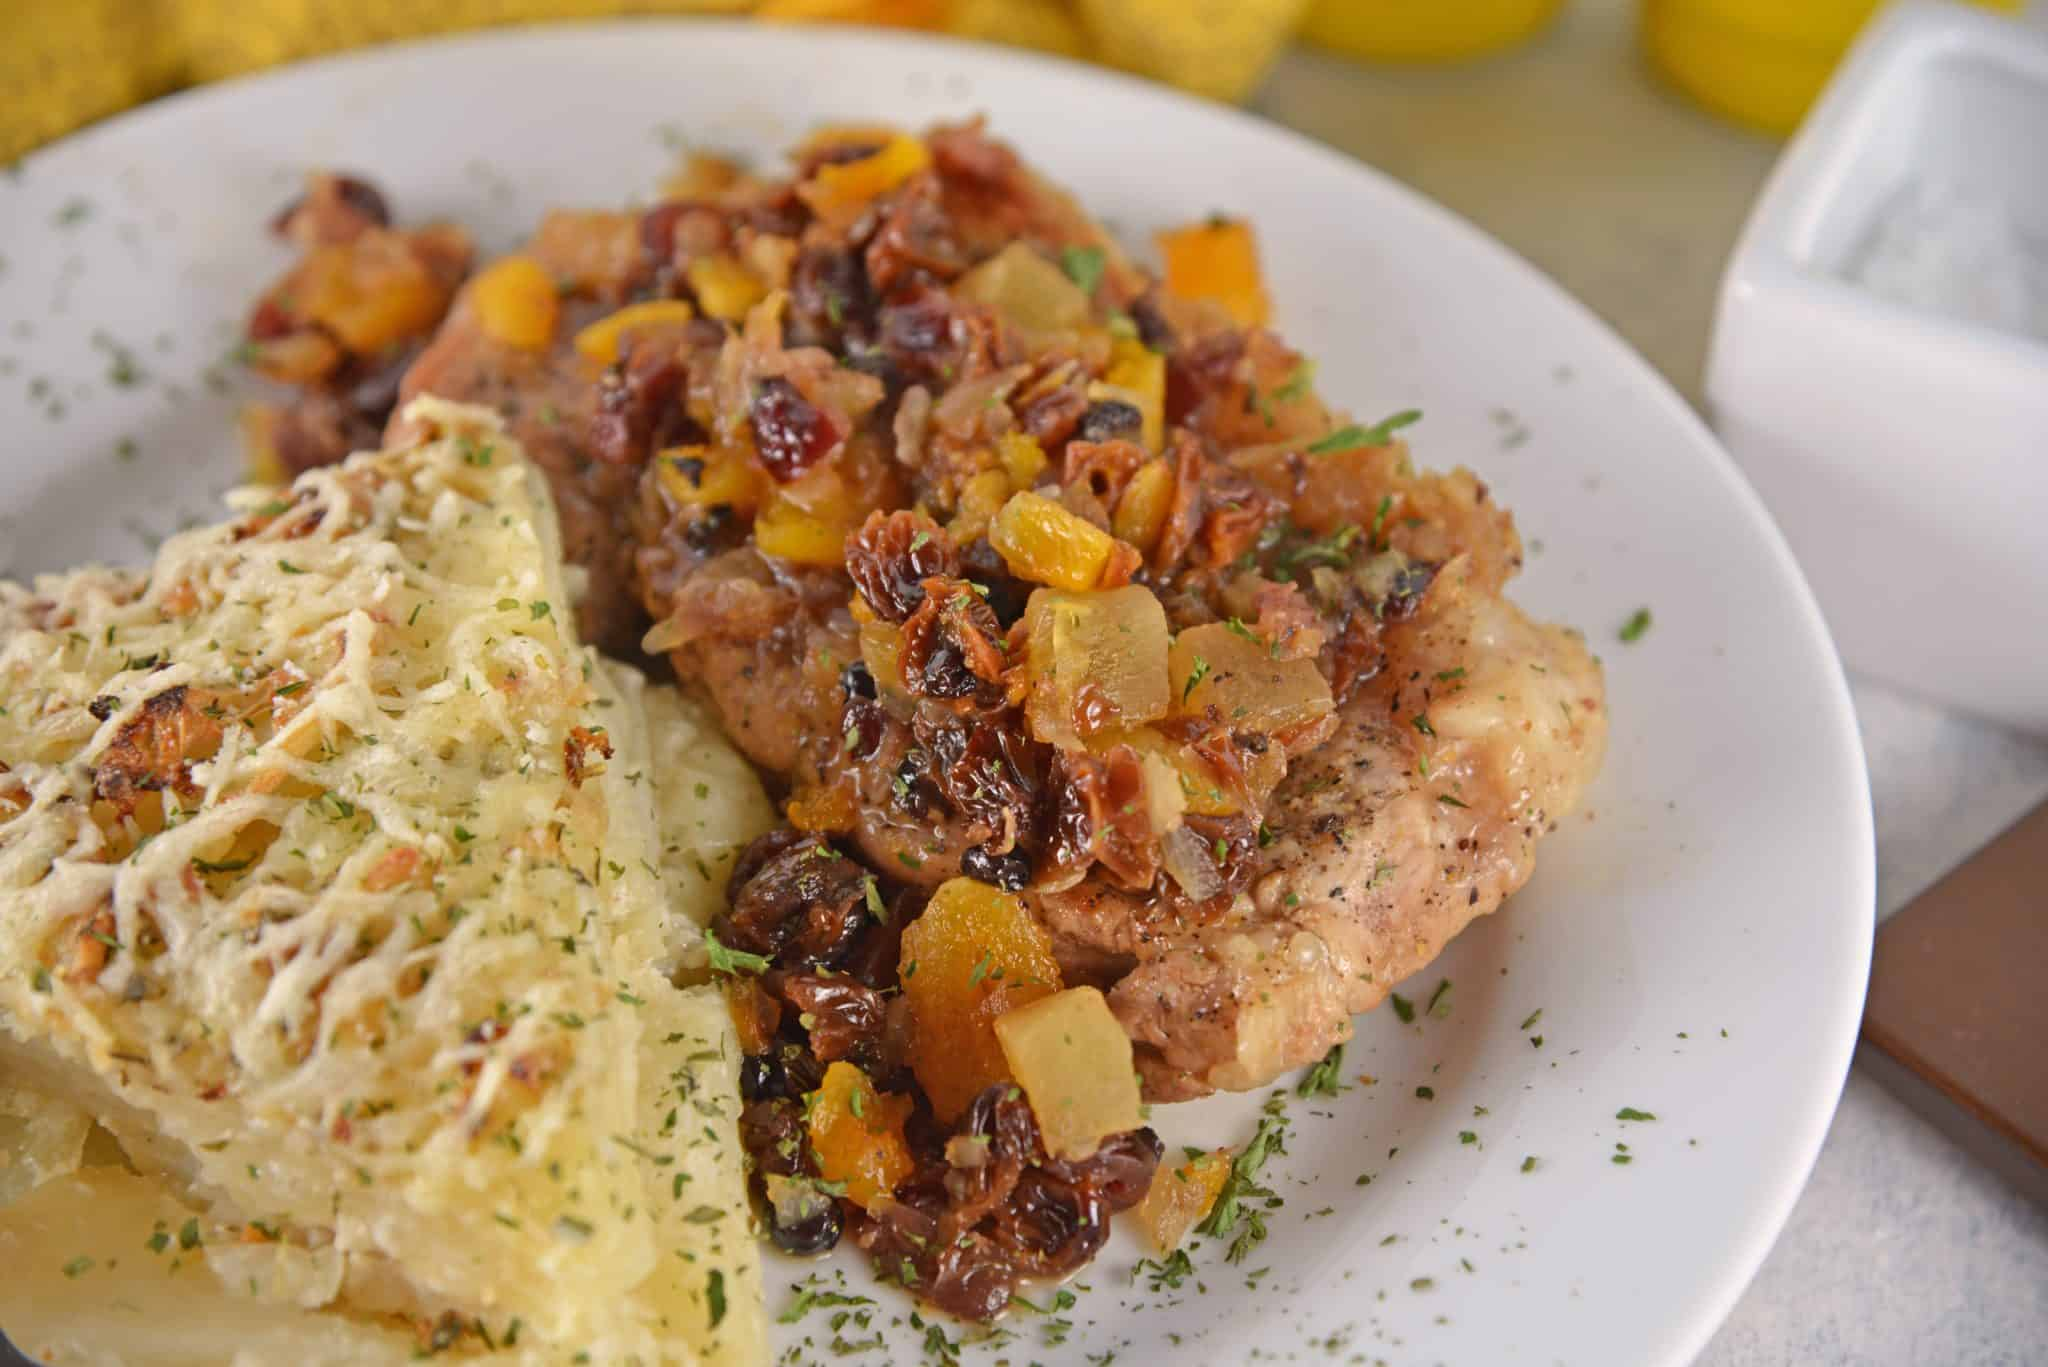 Mixed fruit pork chop on a white plate